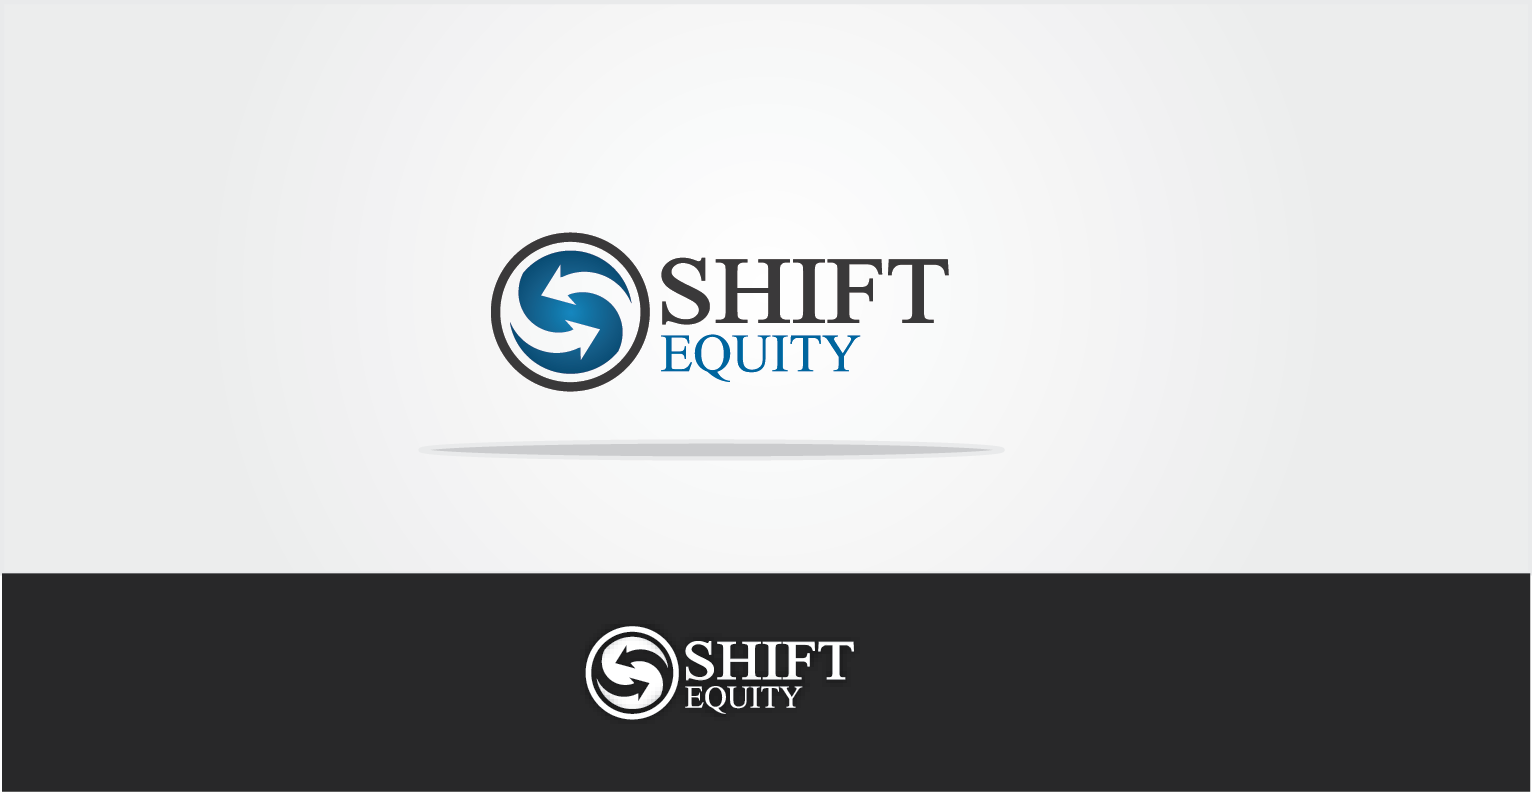 New logo wanted for Shift Equity